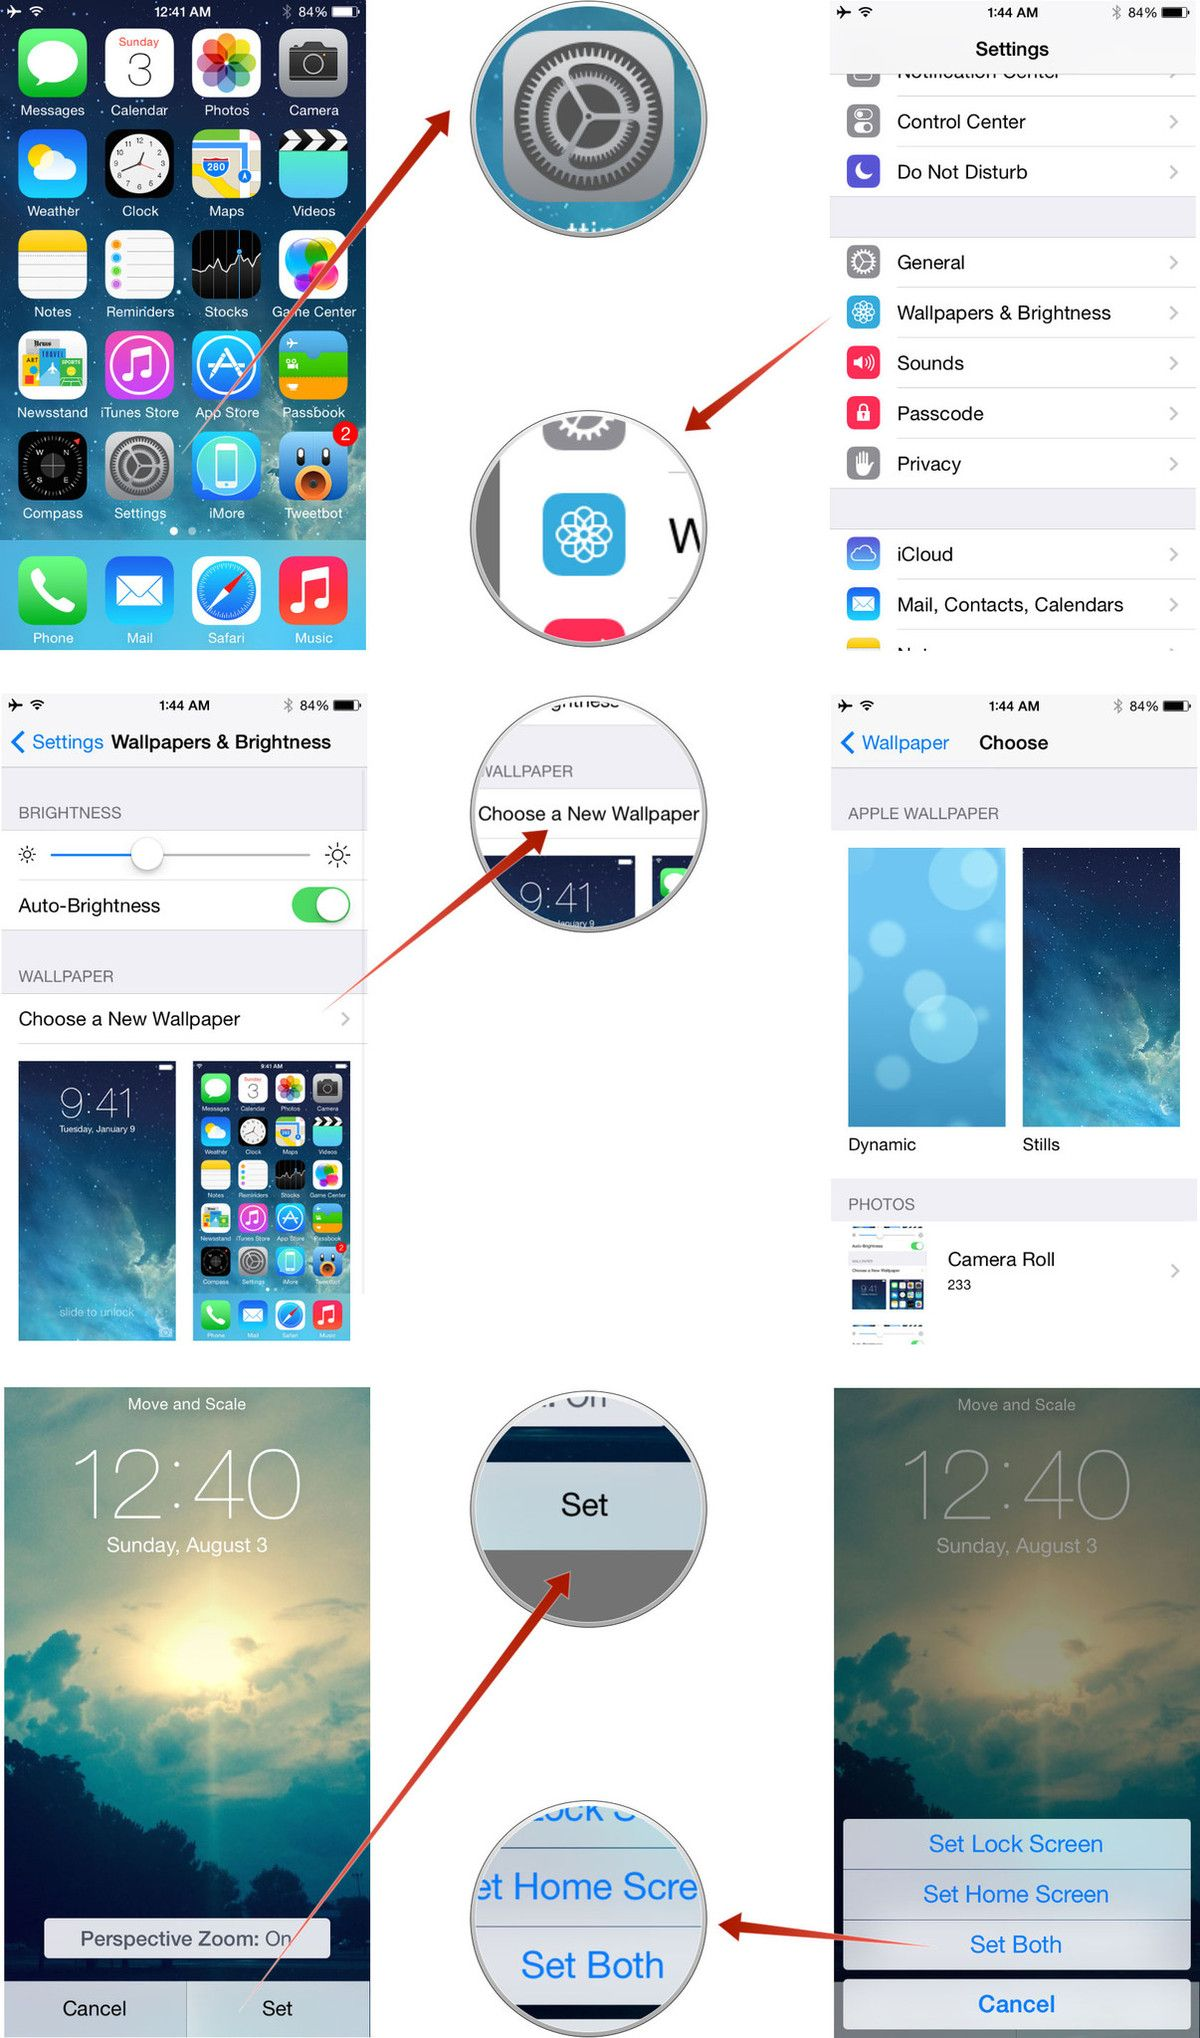 How To Change The Wallpaper To Customize Your Iphone Or Ipad